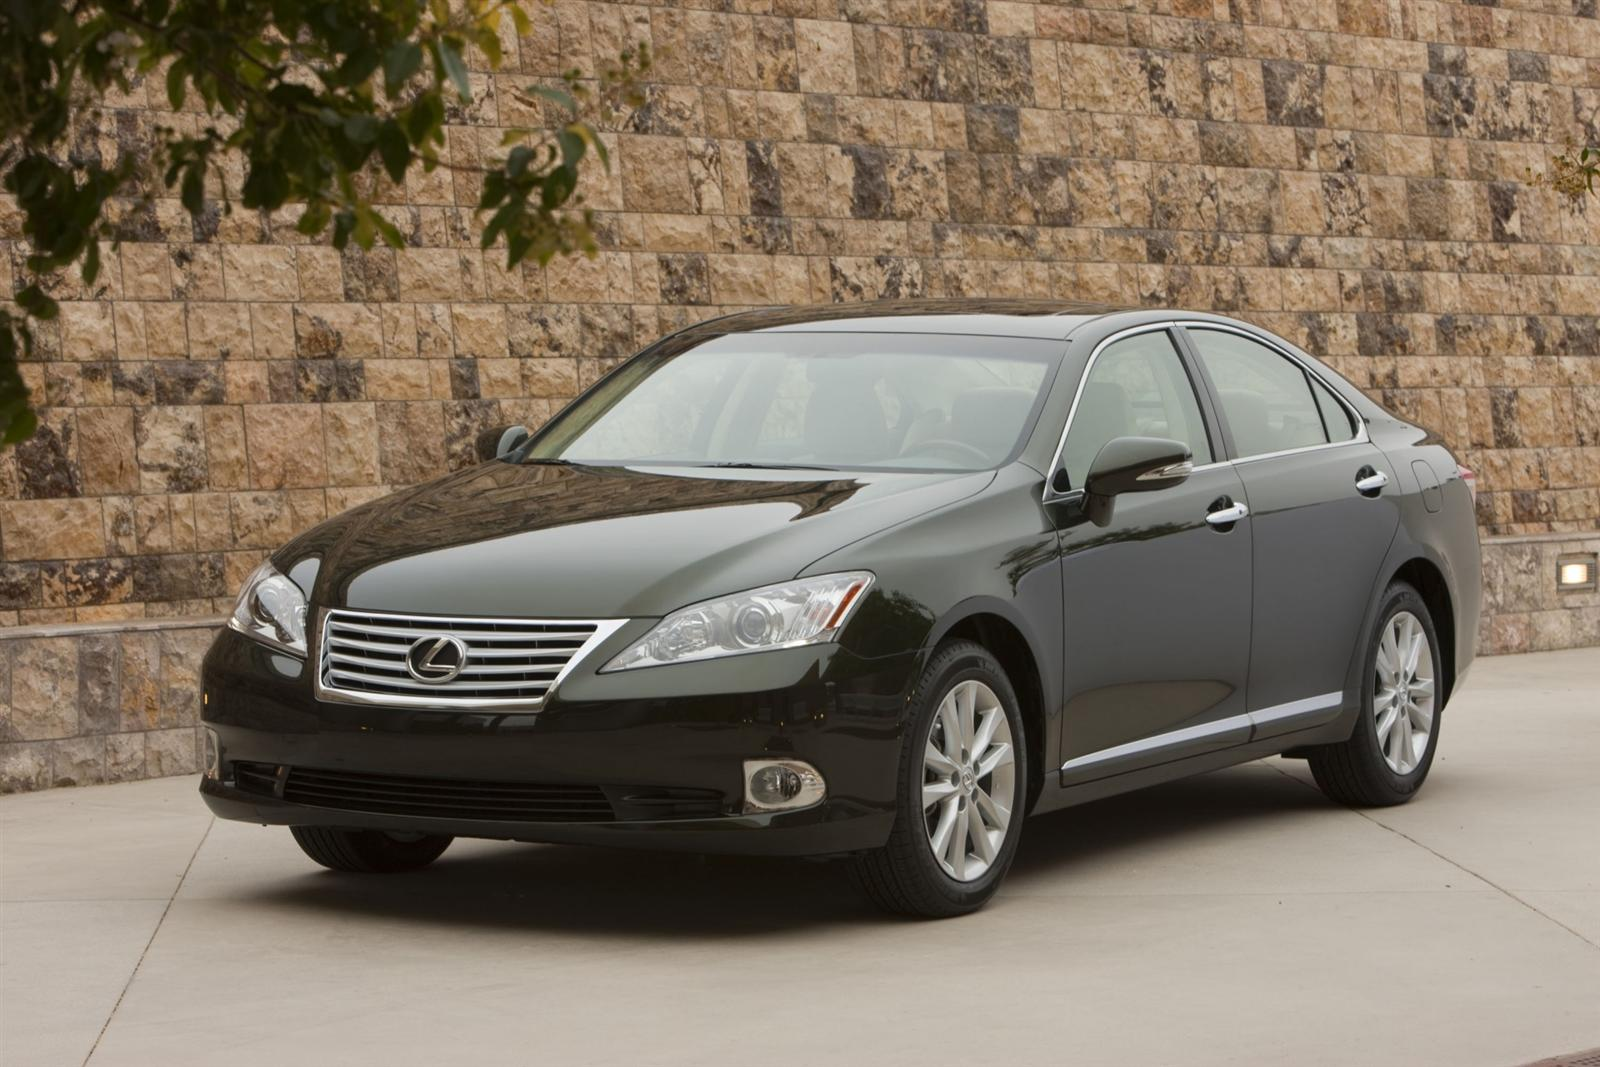 2011 Lexus ES350 sedan 5 The Exciting New 2011 Lexus ES350